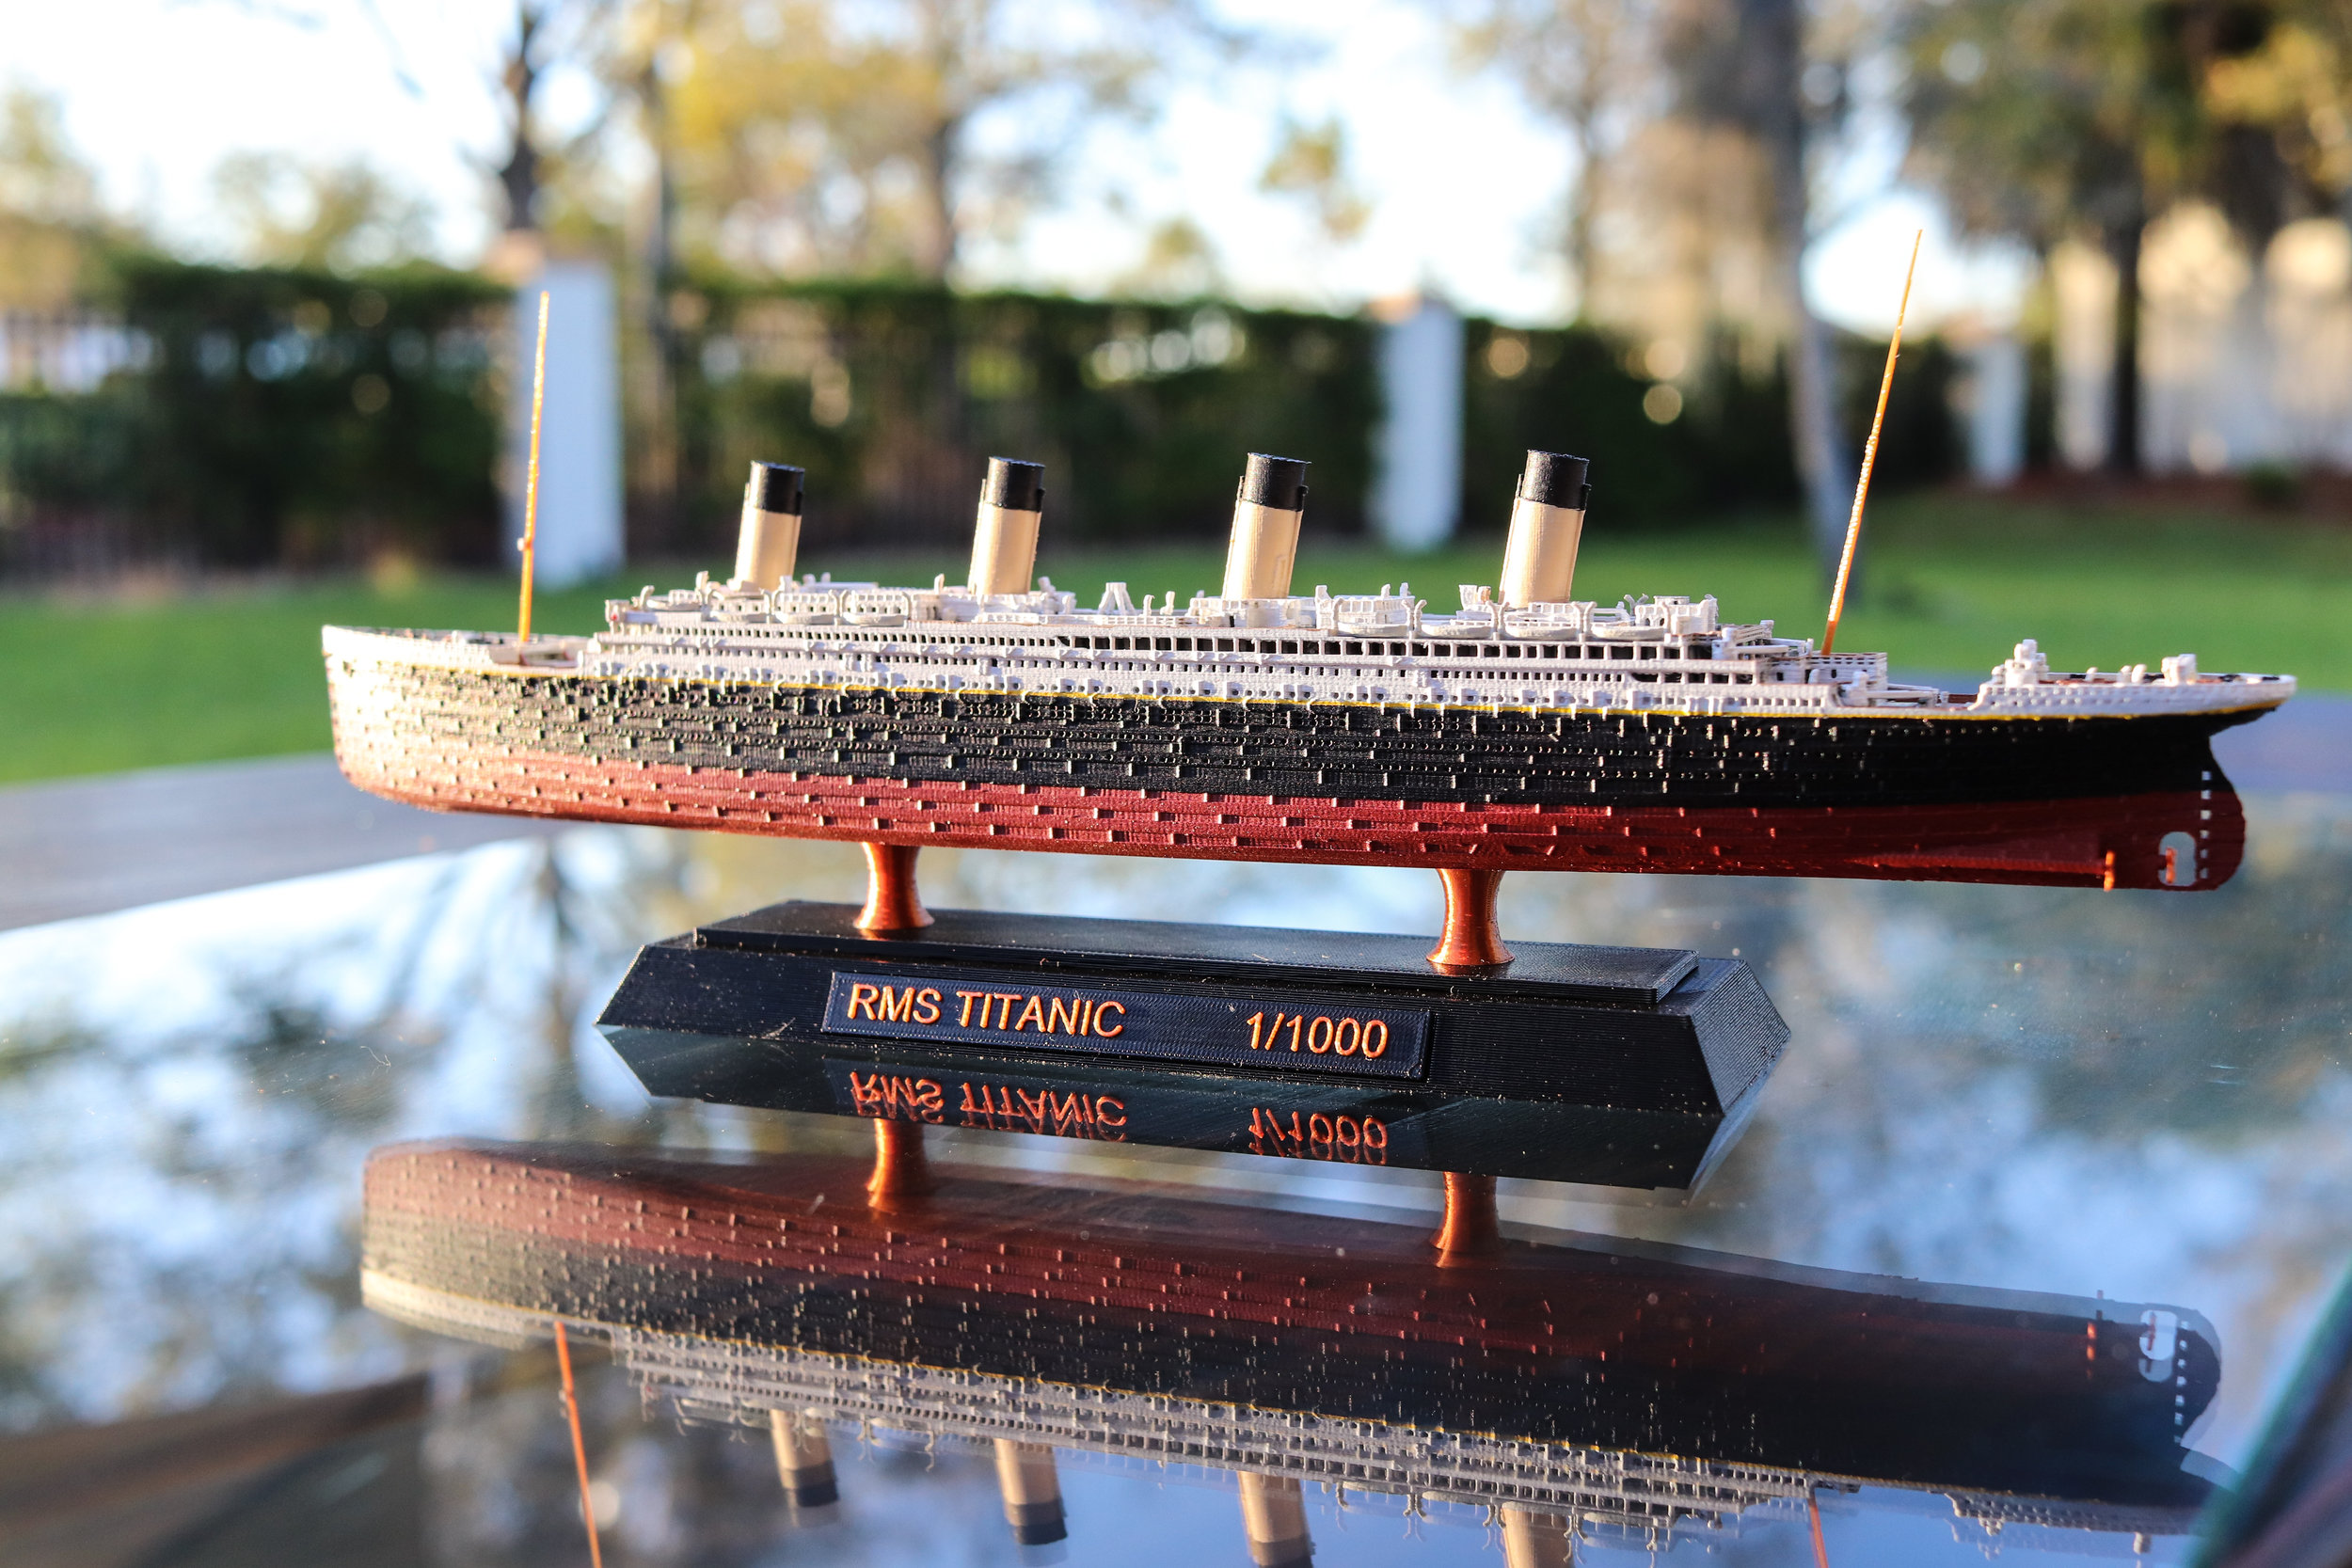 RMS Titanic Model - Click for details